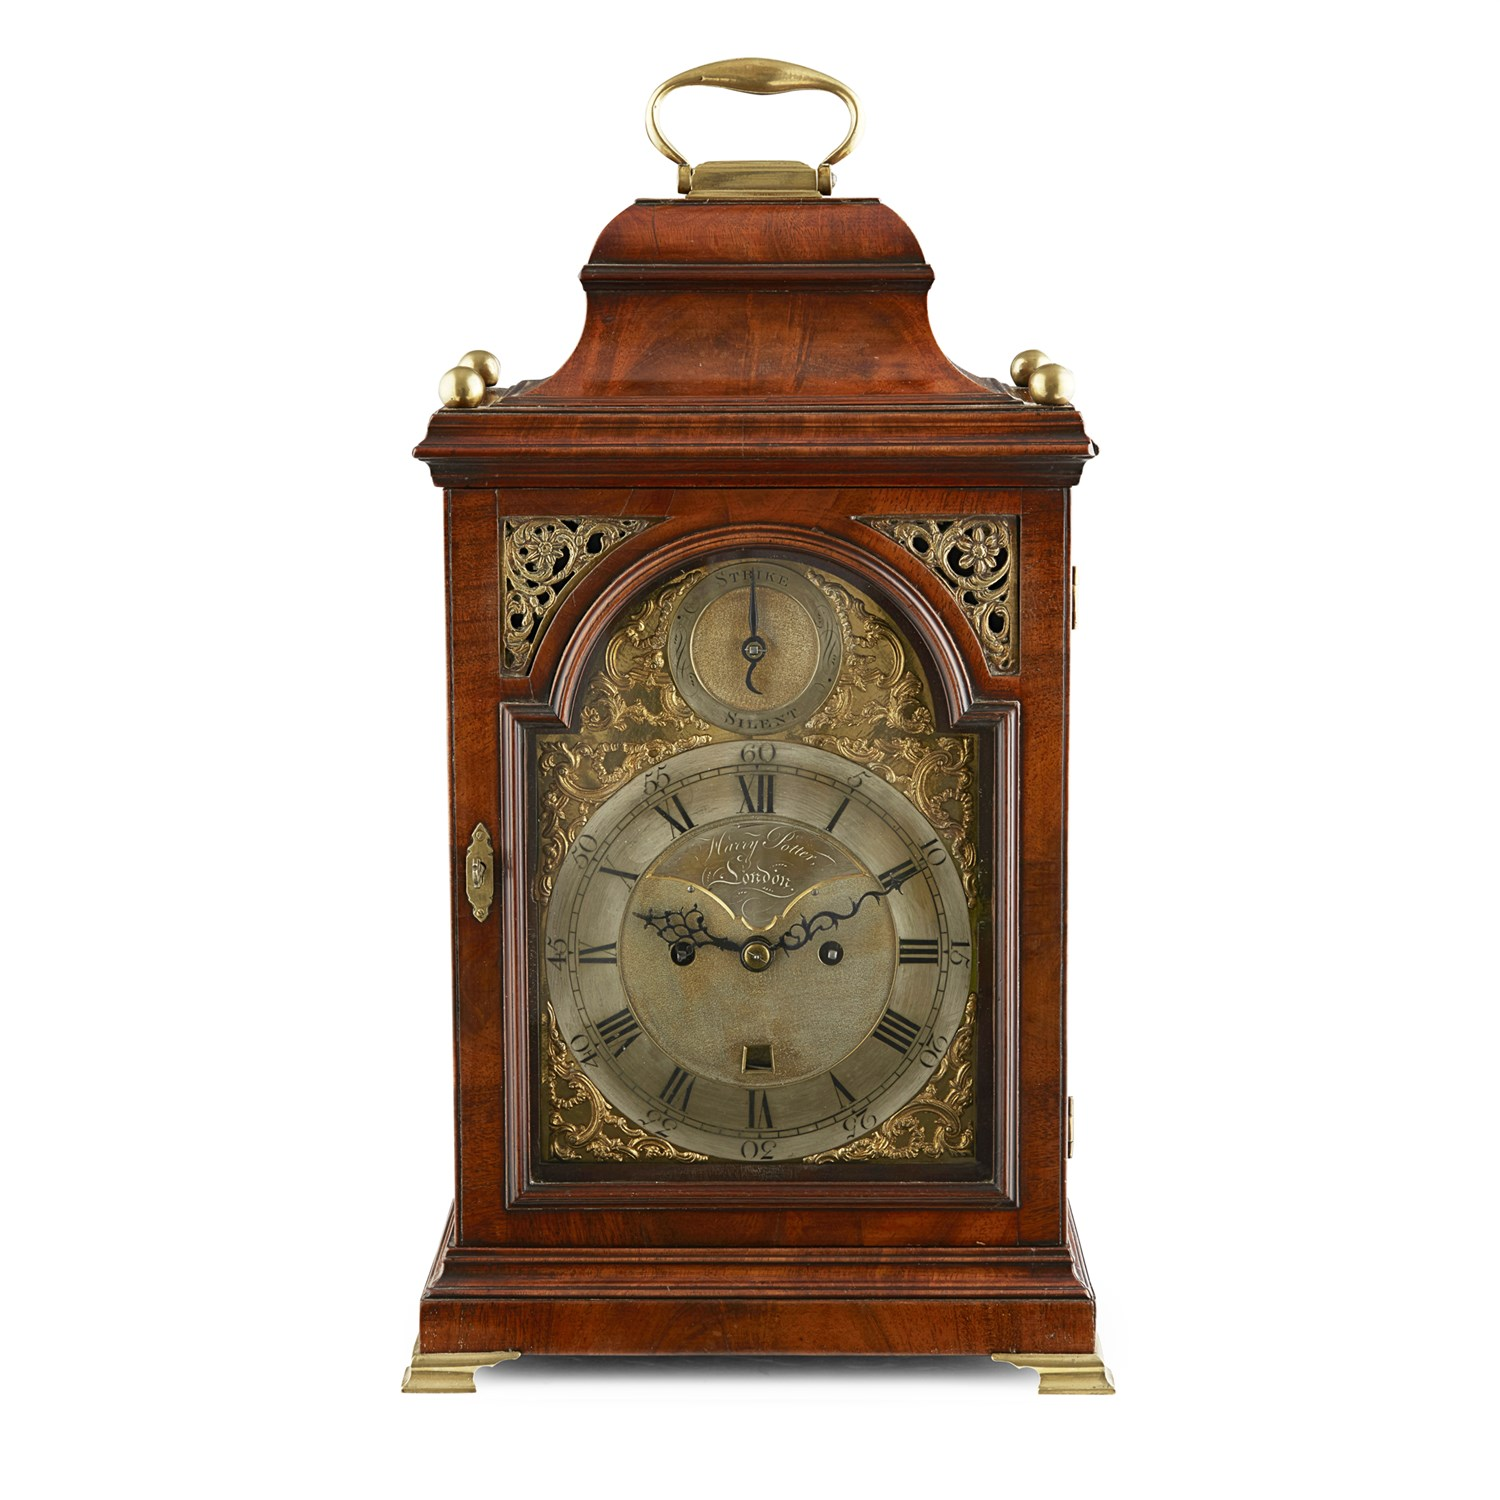 Lot 35 - GEORGE III MAHOGANY HOUR REPEATING BRACKET CLOCK, HARRY POTTER, LONDON